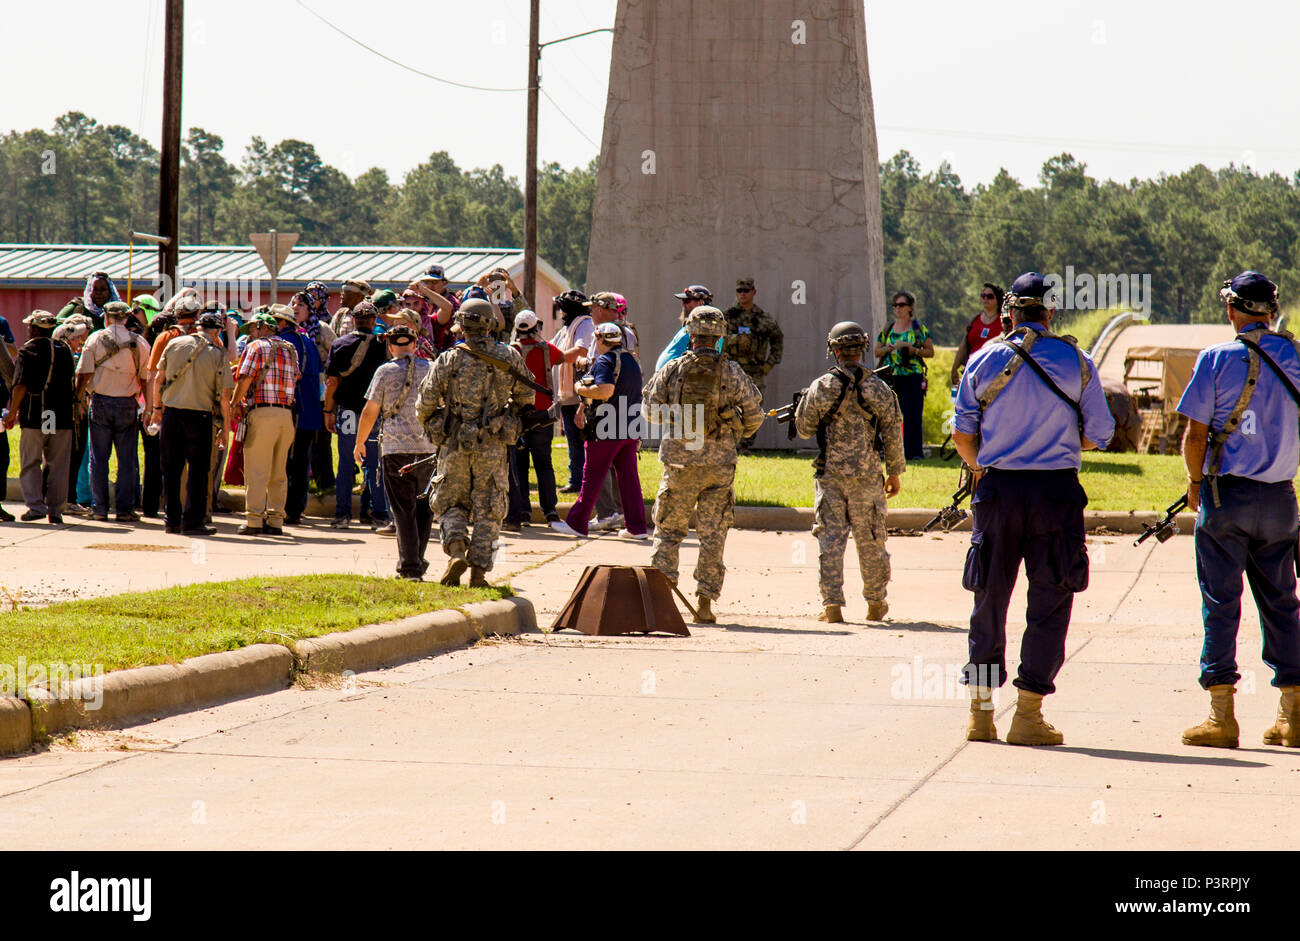 New York Army National Guard Soldiers assigned to 1st Battalion, 69th Infantry Regiment, along with Atropian police officers, observe a riot in the village of Dara Lam during training at the Army's Joint Readiness Training Center, Fort Polk, La.,  July 21, 2016. Approximately 3,000 Soldiers from New York joined 2,000 other state Army National Guard units, active Army and Army Reserve troops as part of the 27th Infantry Brigade Combat Team task force. The Soldiers are honing their skills and practicing integrating combat operations ranging from infantry troops engaging in close combat with an e Stock Photo